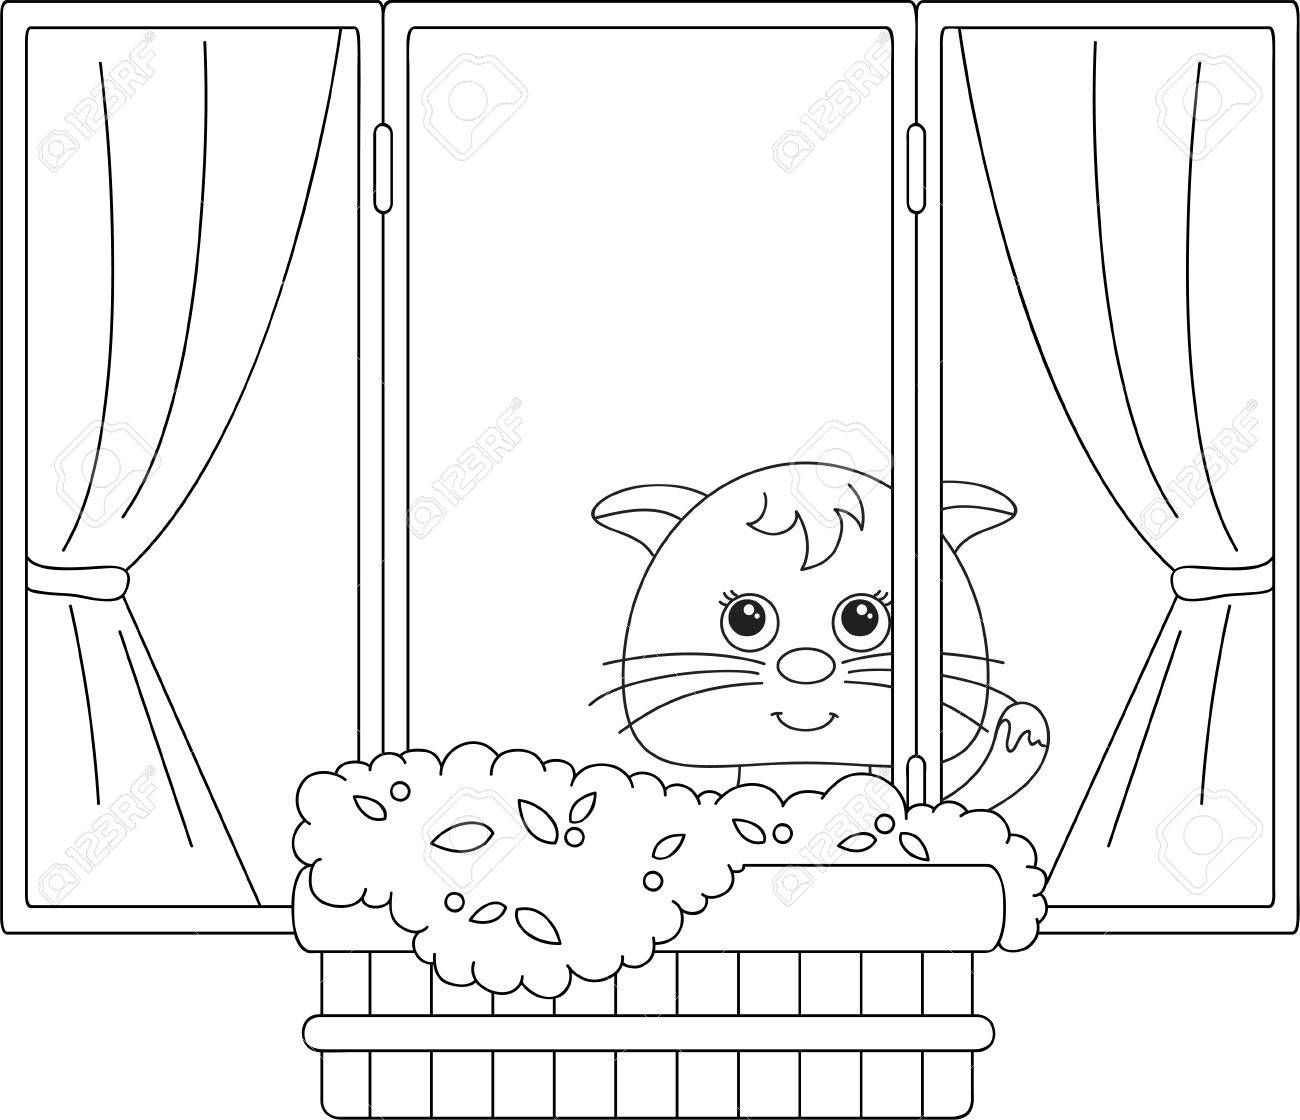 Cat Sitting On The Window With Flower Pots And Curtains Coloring Book Vector Illustration